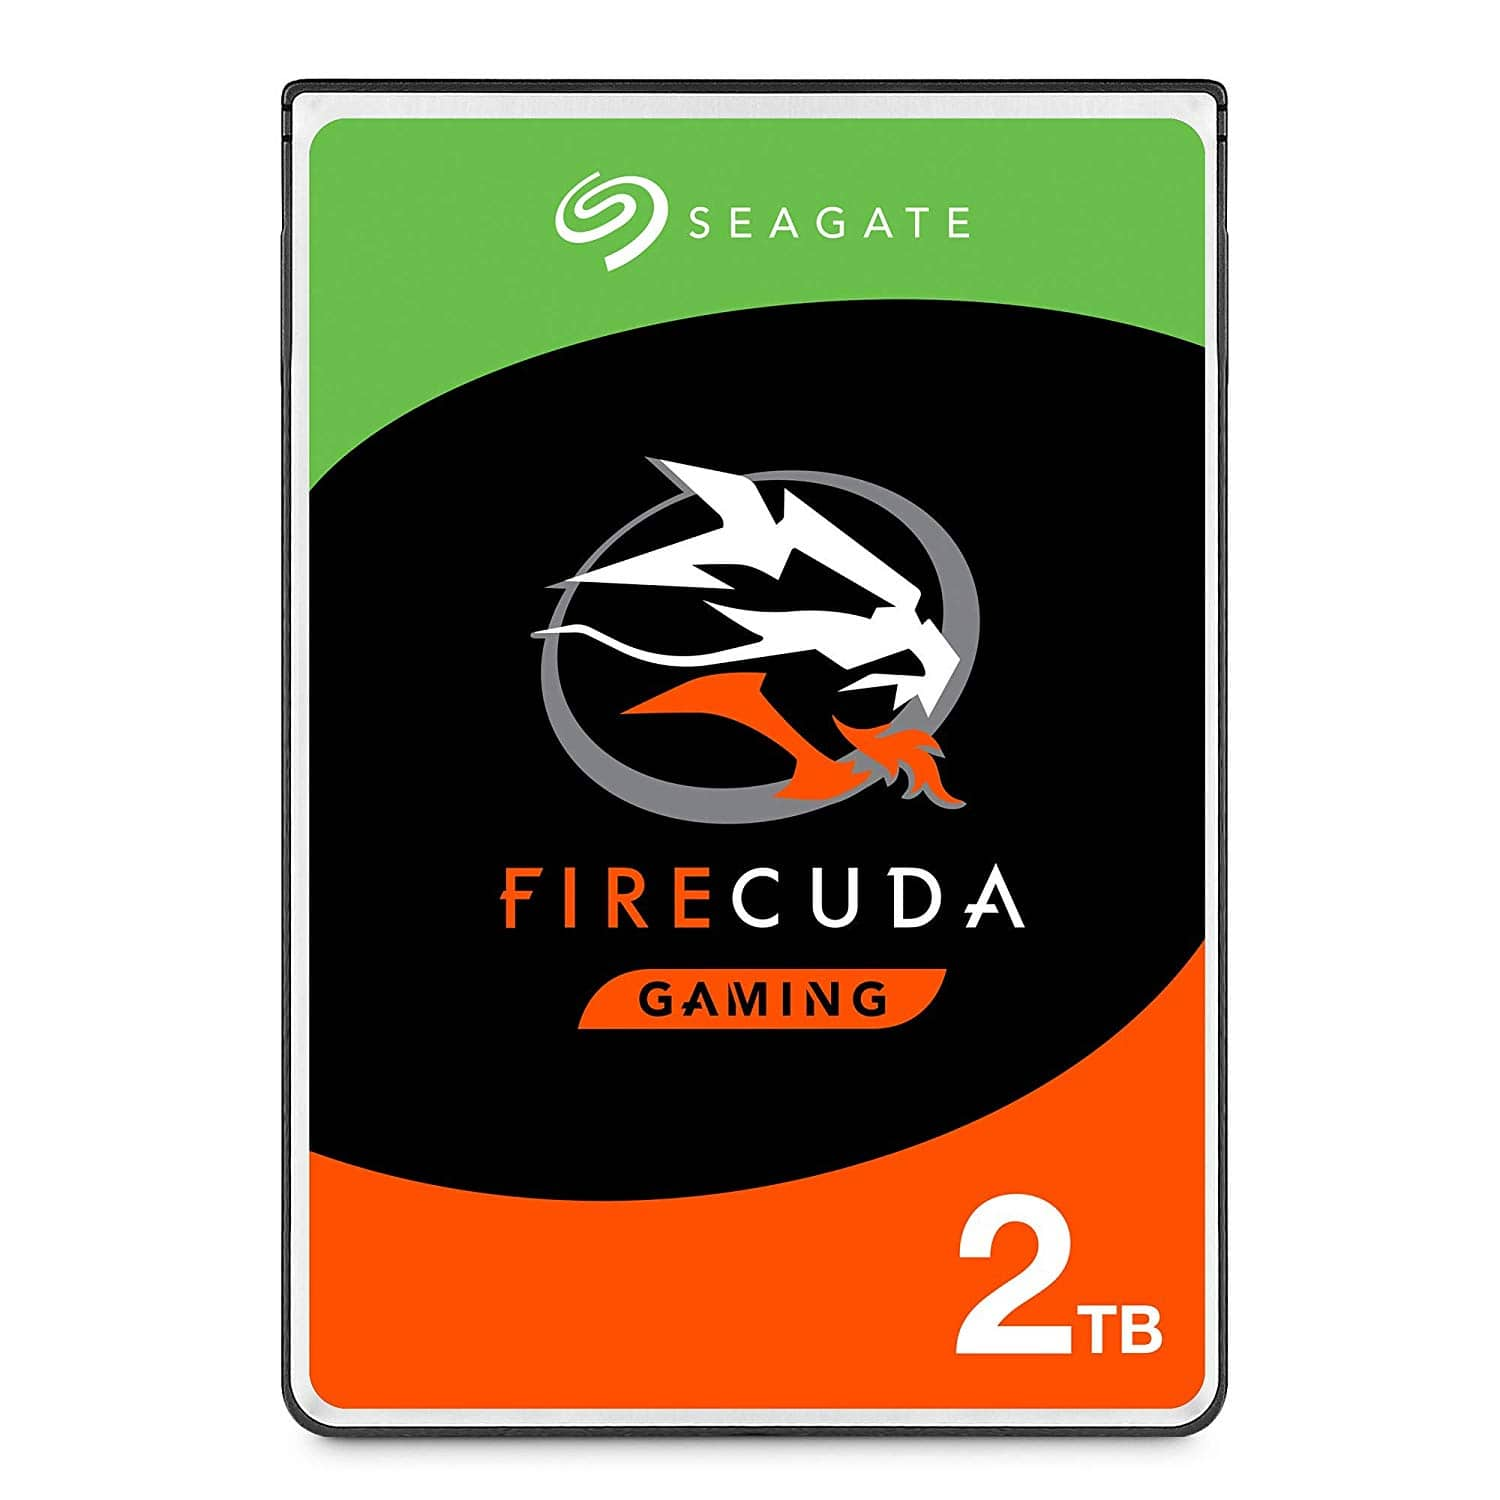 Seagate FireCuda 2TB Solid State Hybrid Drive Performance SSHD – 2.5 Inch SATA 6GB/s Flash Accelerated for Gaming PC Laptop, $64.99